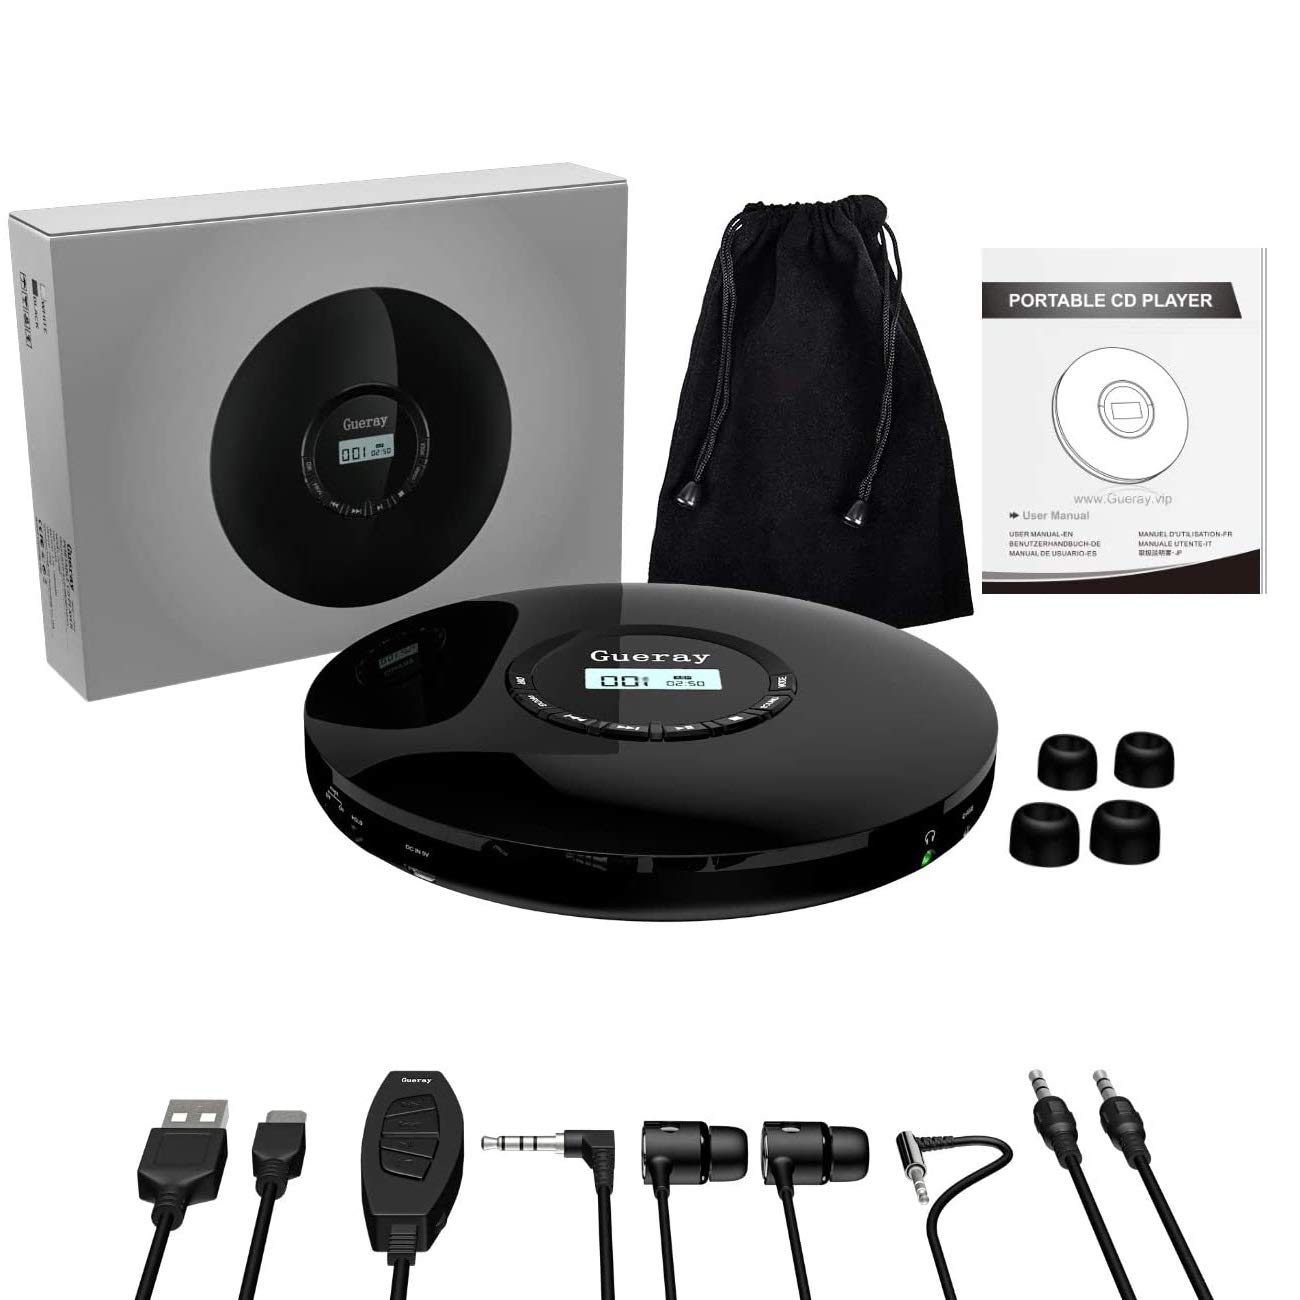 Portable CD Player 1400mAh CD Walkman Gueray Rechargeable CD Player Portable CD Discman Personal CD Player with Headphones Jack USB Supply CD Music Disc with LCD Display (Black)